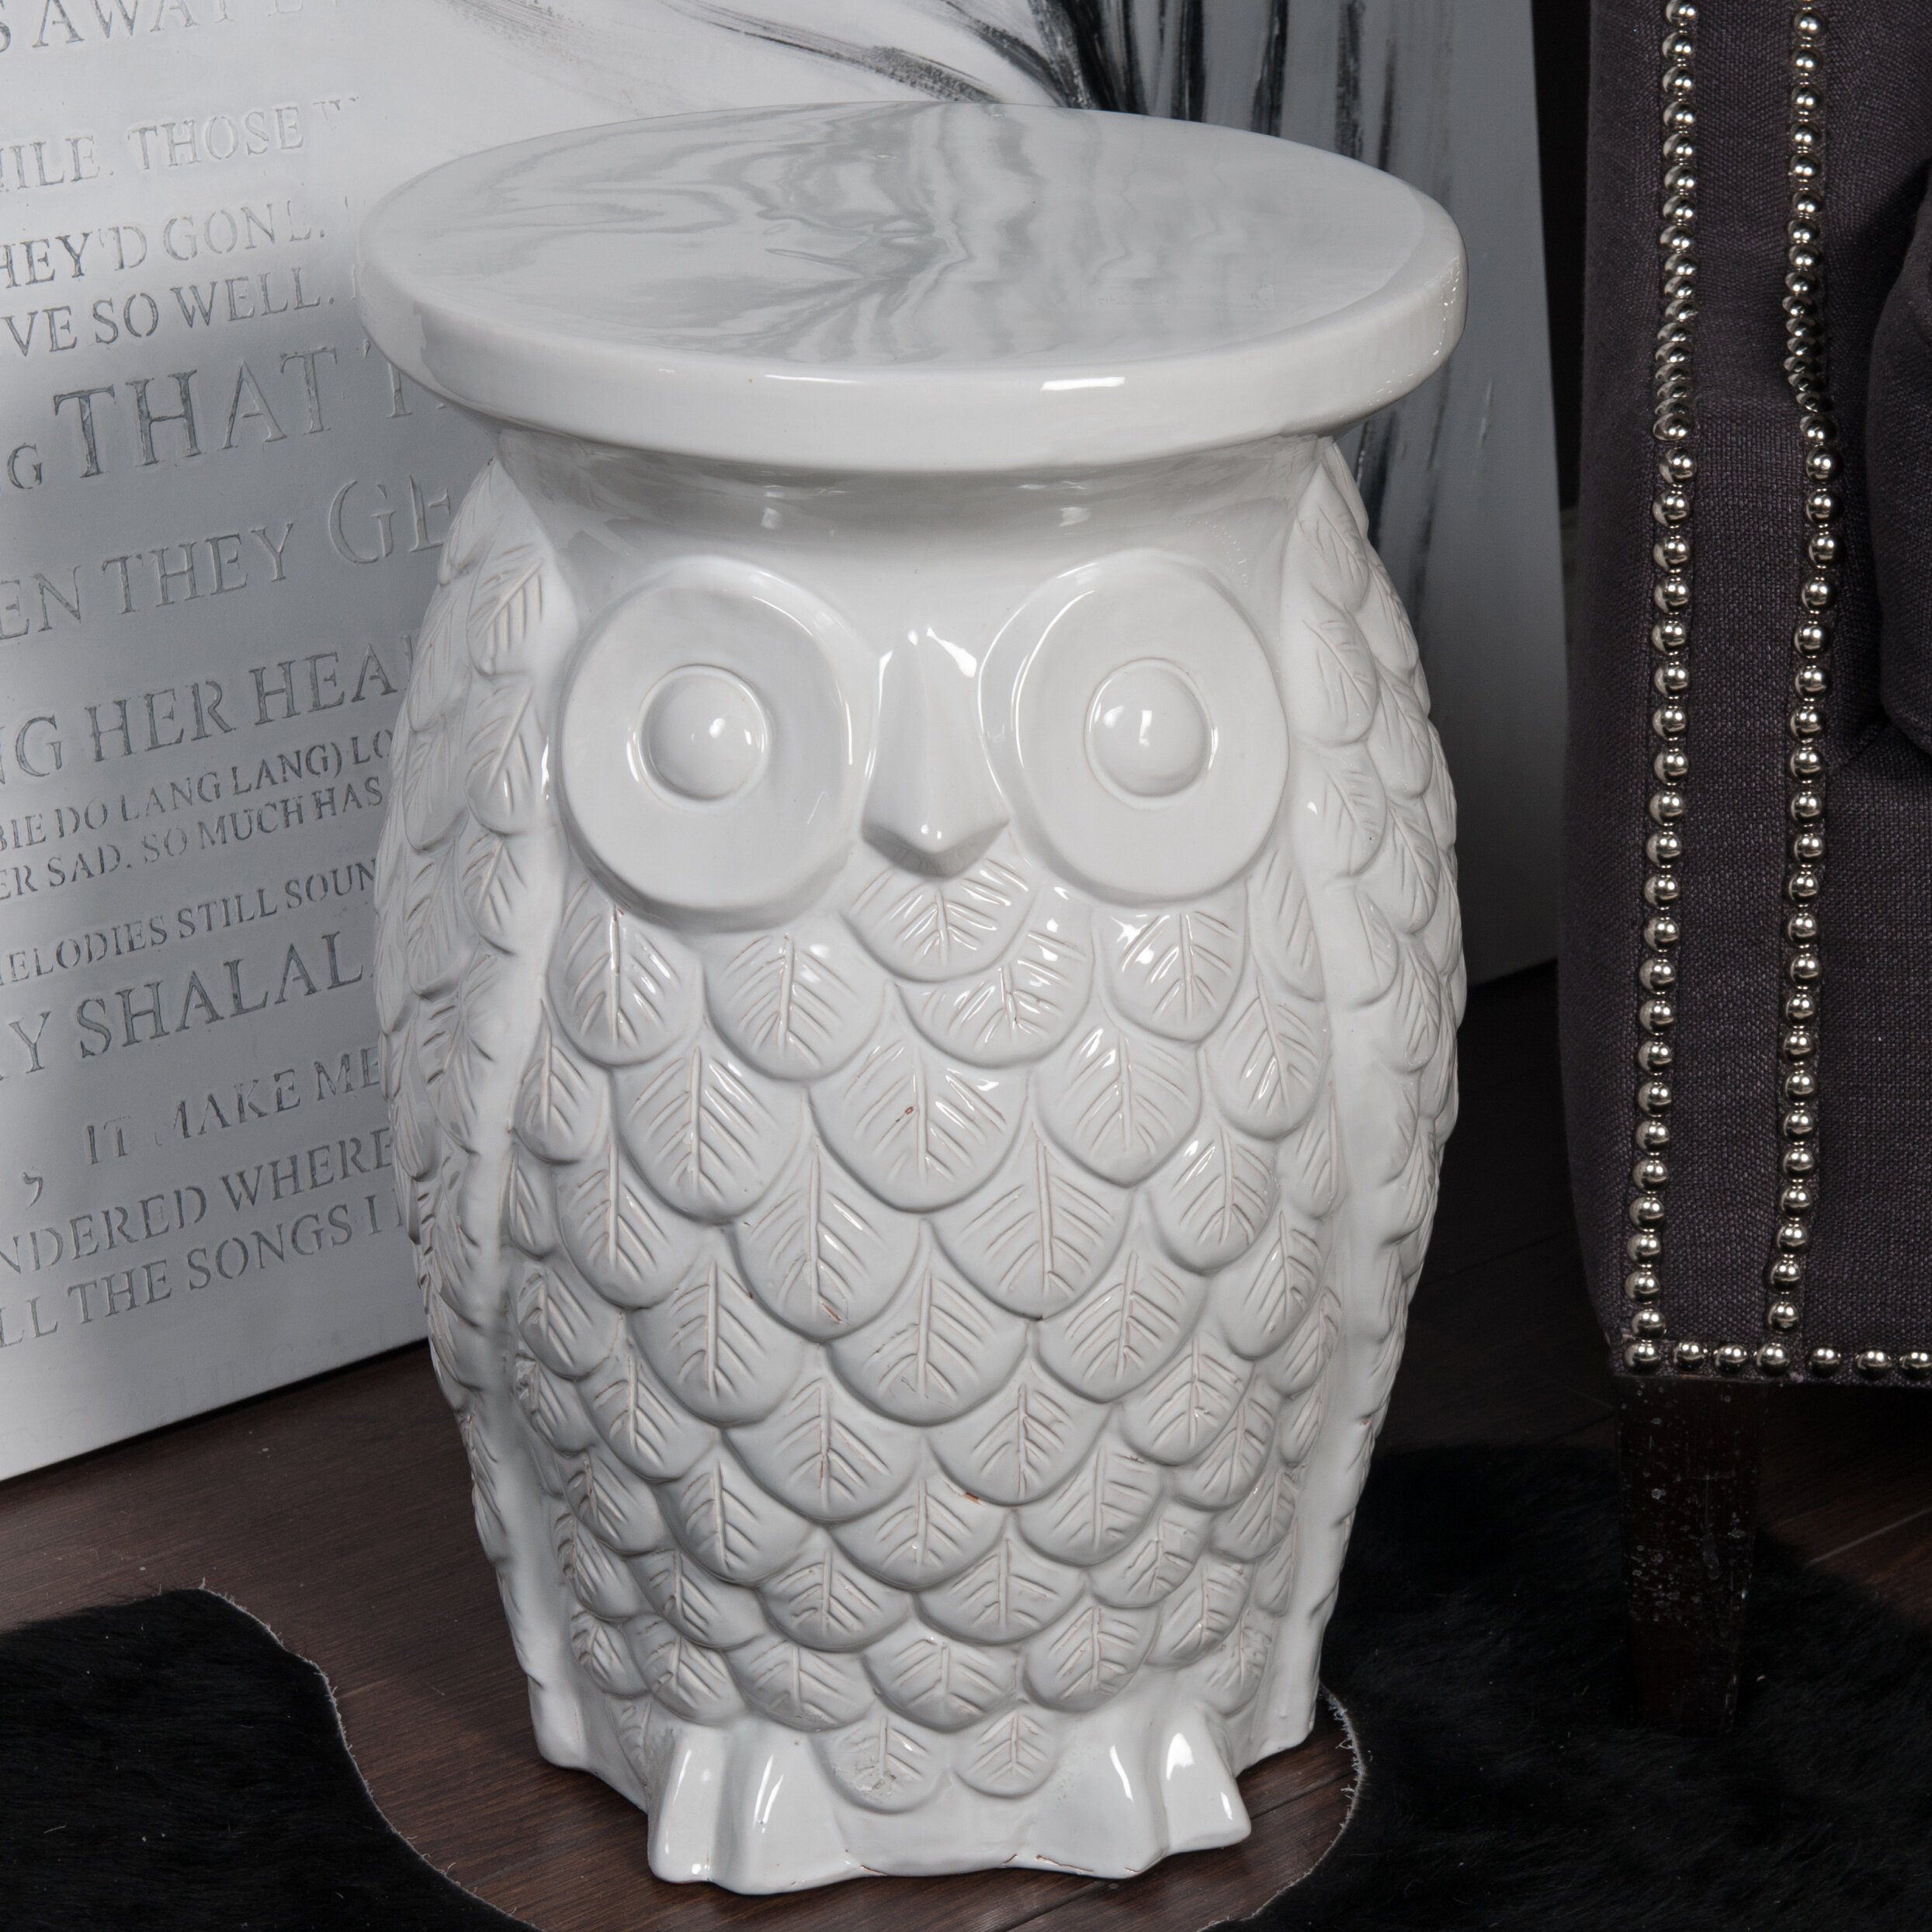 Ceramic Owl Garden Stool Intended For Svendsen Ceramic Garden Stools (View 14 of 25)